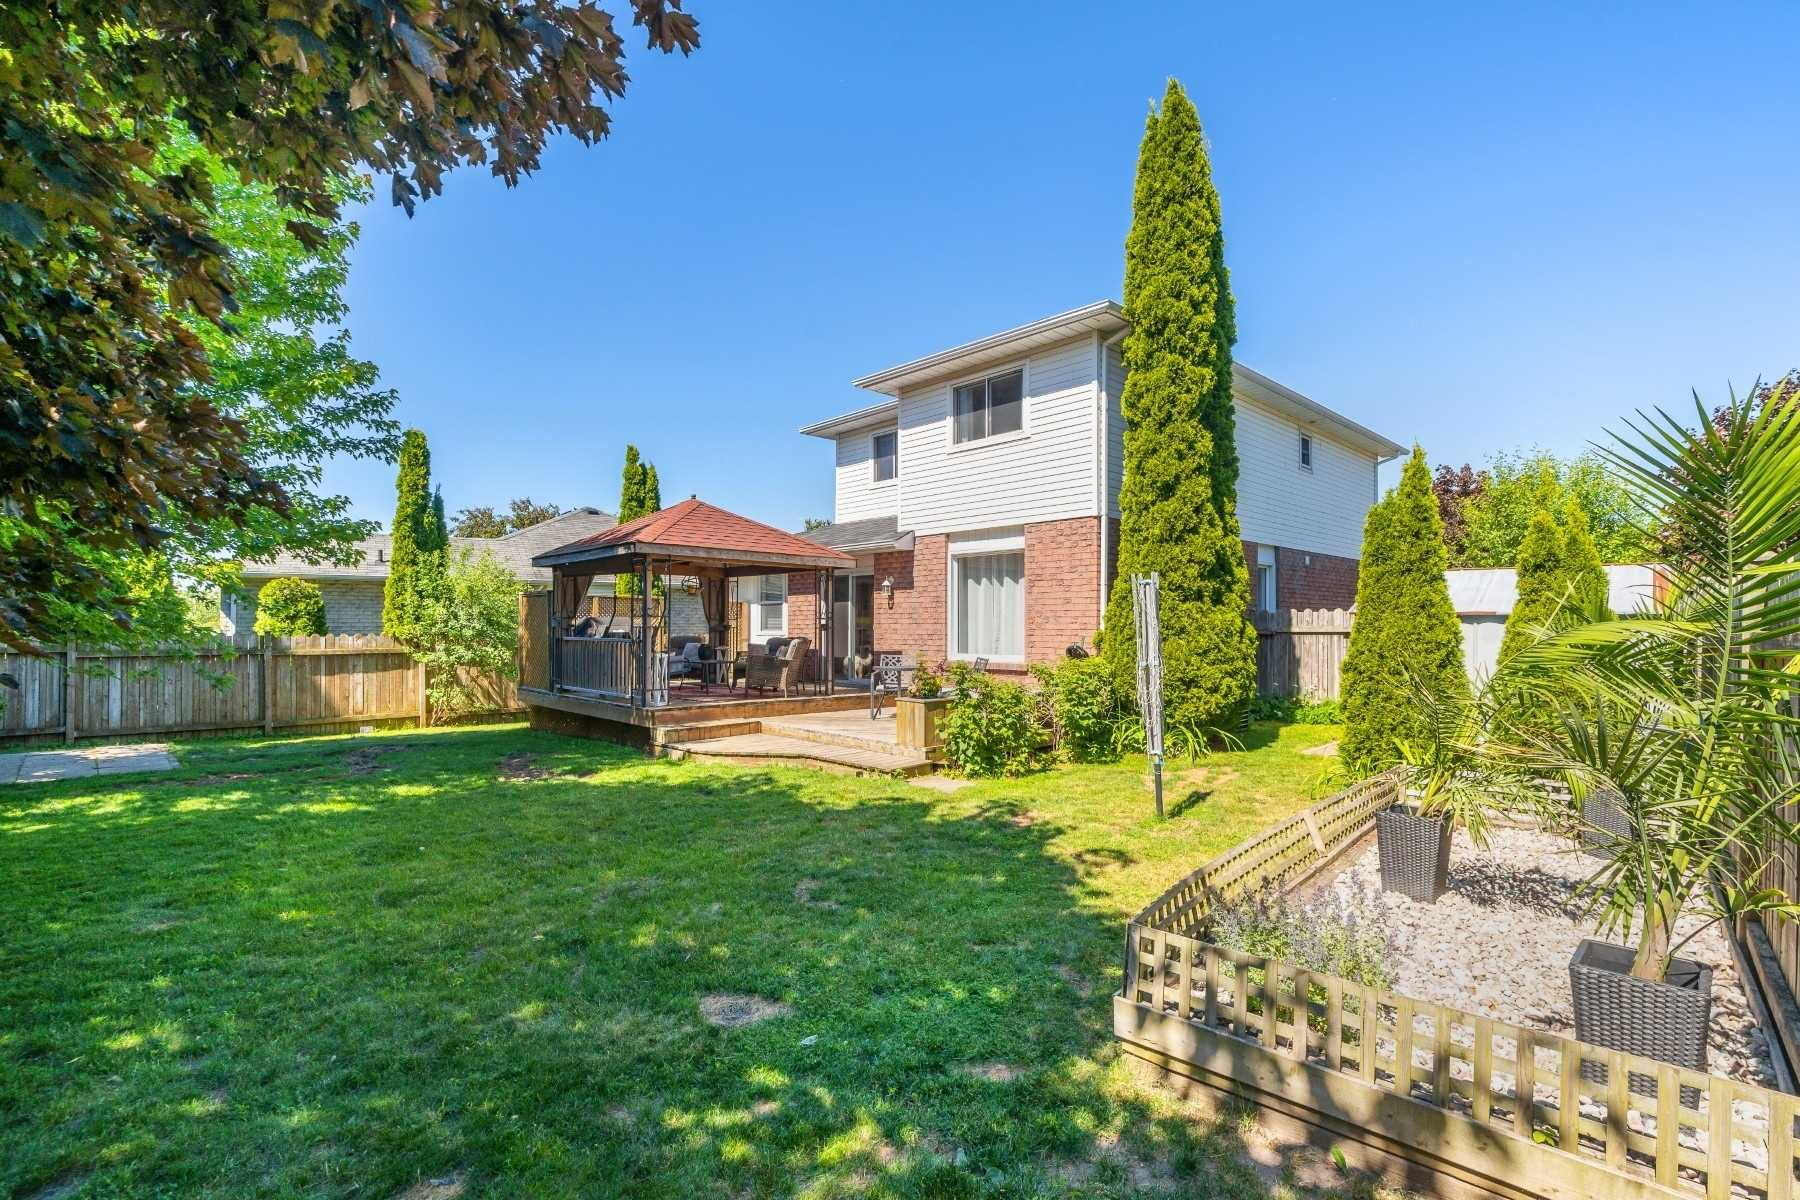 Photo 30: Photos: 1153 Snowberry Court in Oshawa: Pinecrest House (2-Storey) for sale : MLS®# E4794796